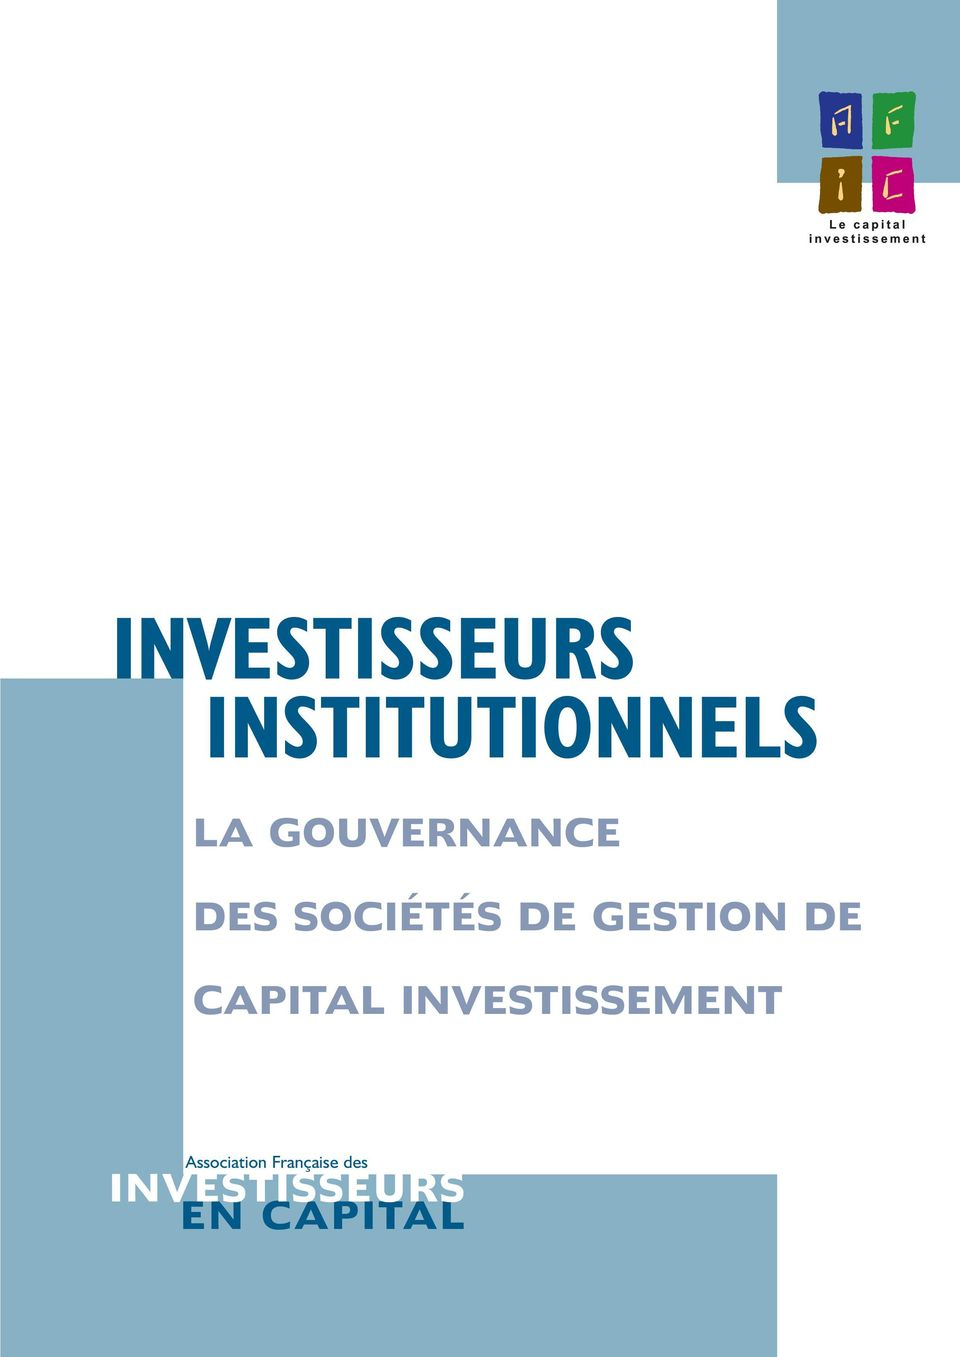 DE CAPITAL INVESTISSEMENT